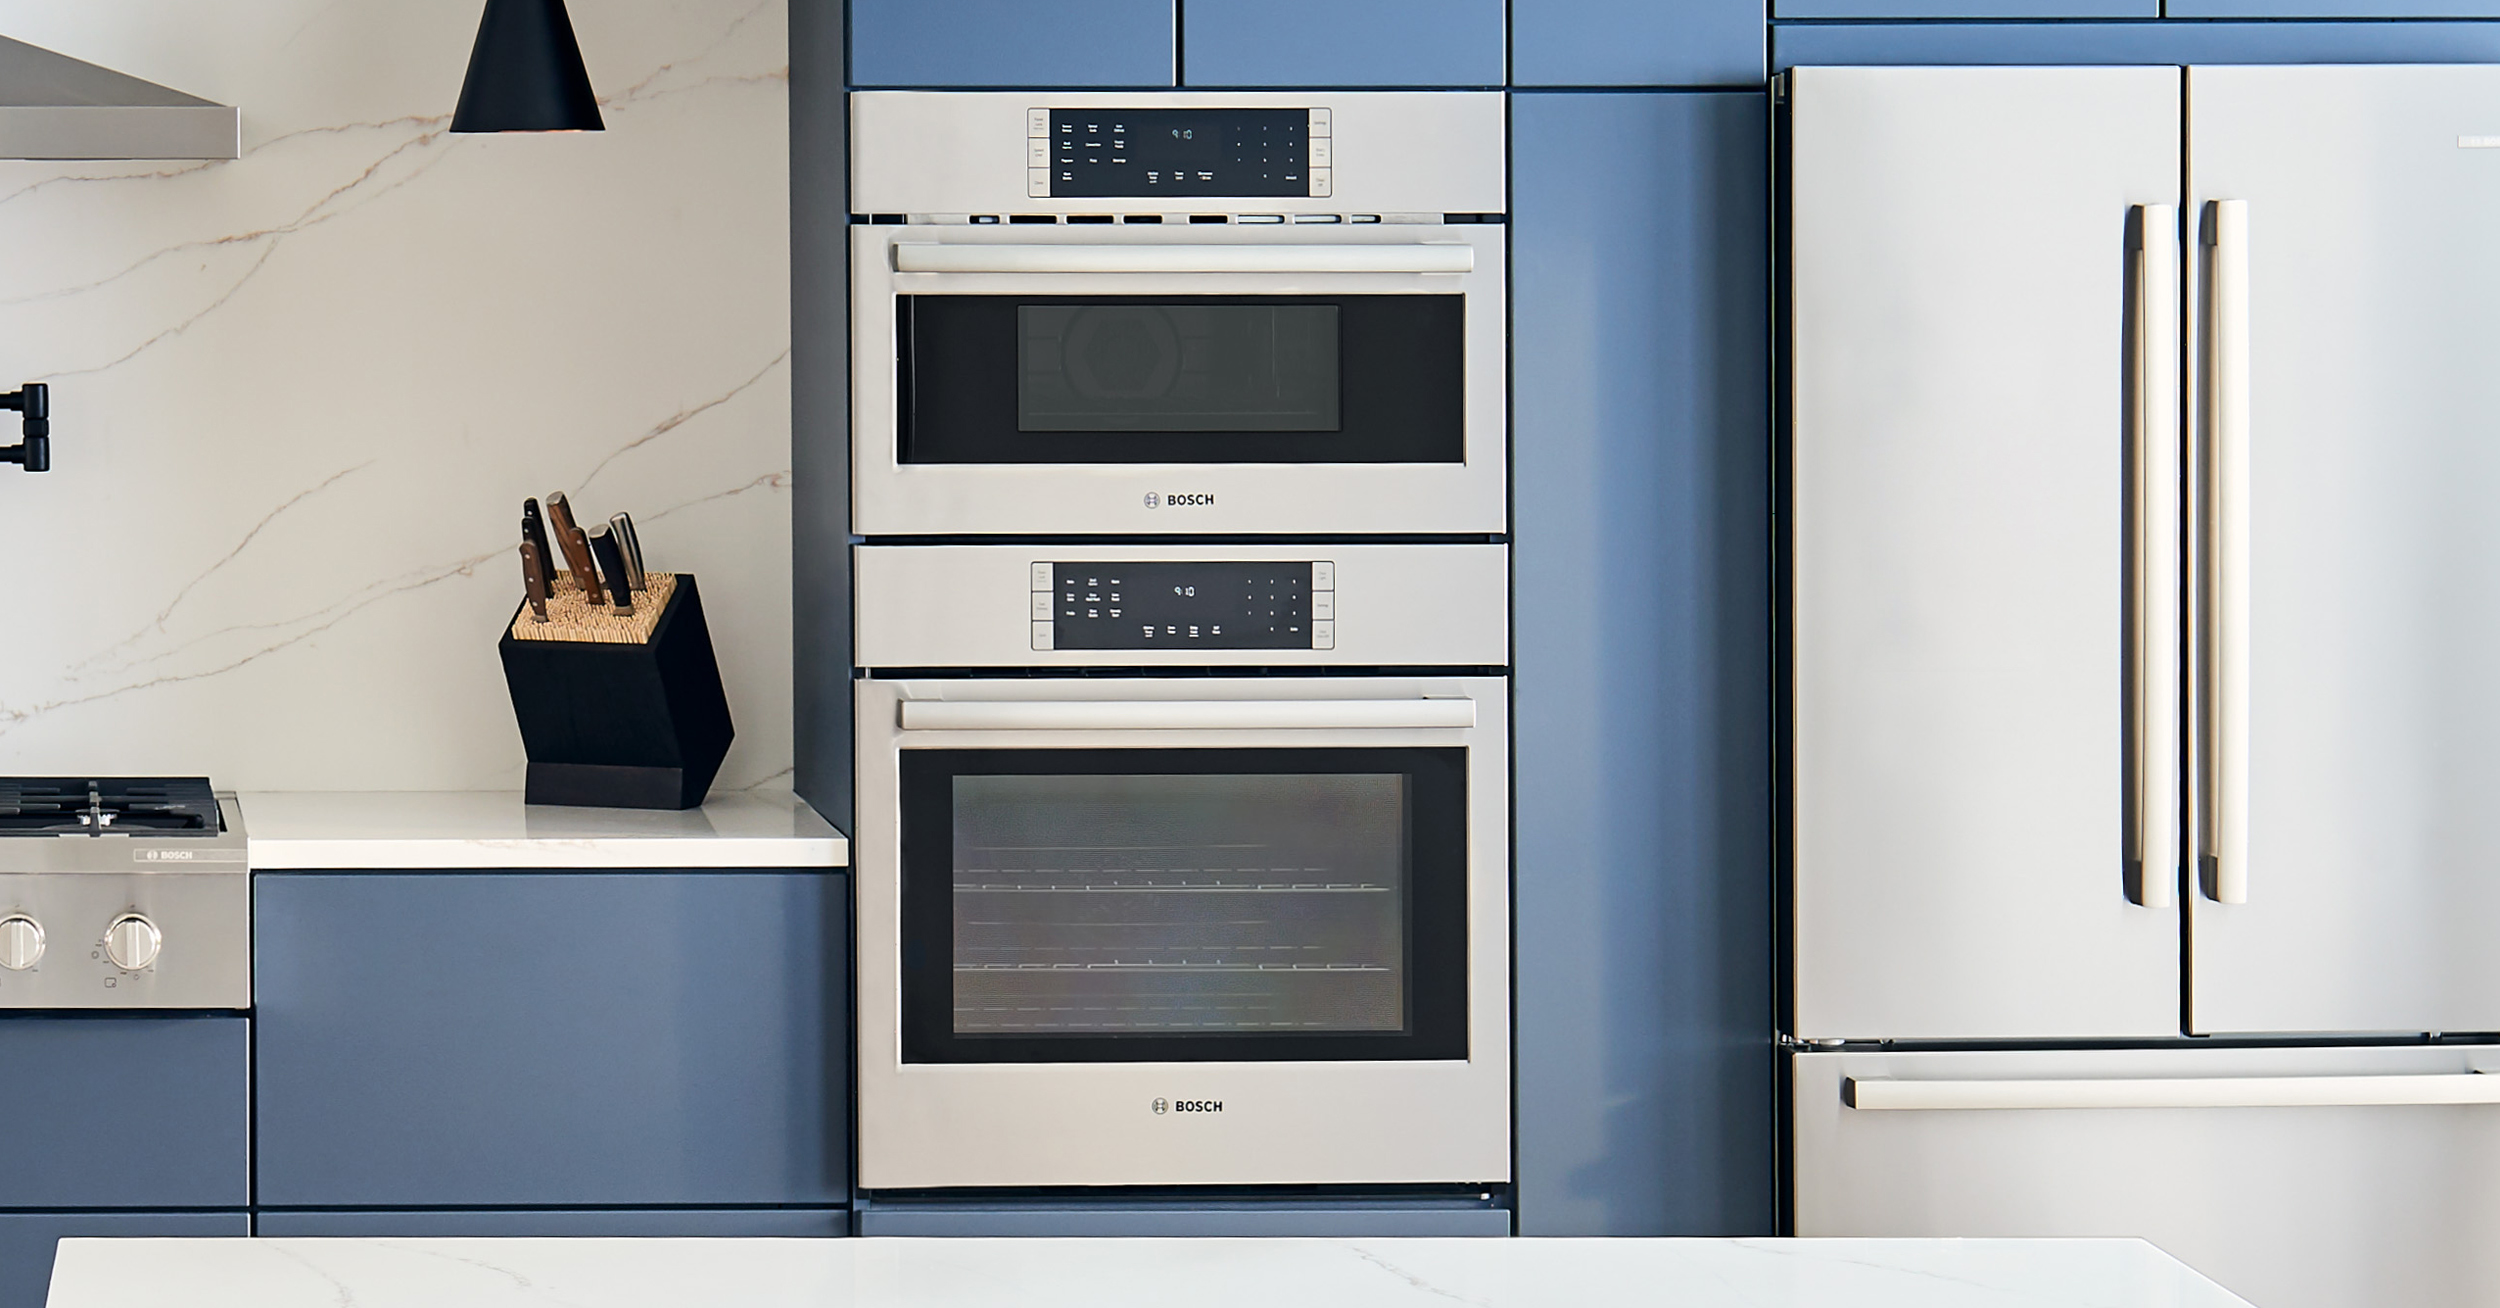 6 Best Wall Oven Microwave Combos Of 2021 Liances Connection